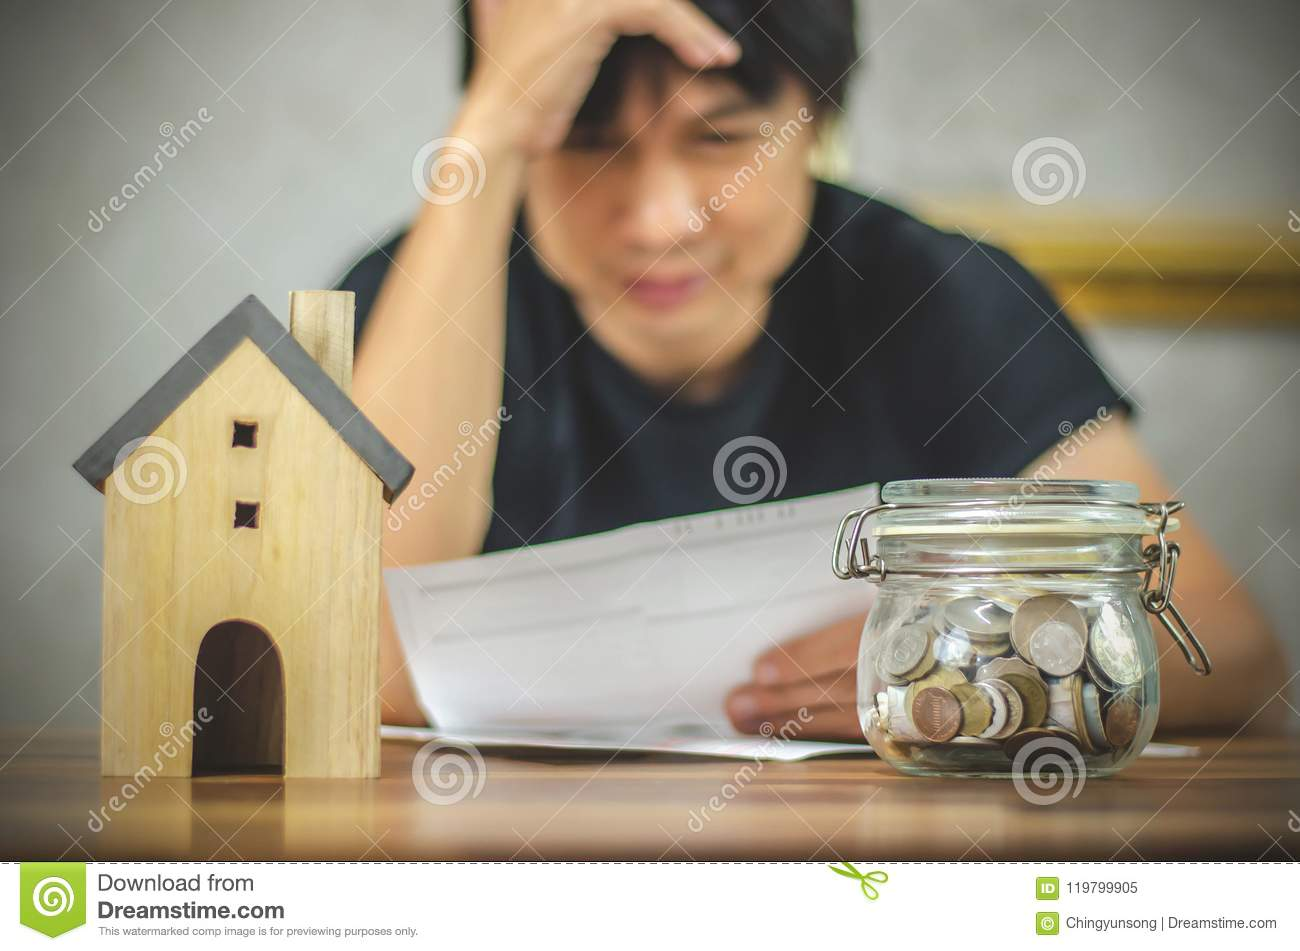 Man checking bills and having financial problems with home debt, Money concept., real estate, buy an apartment